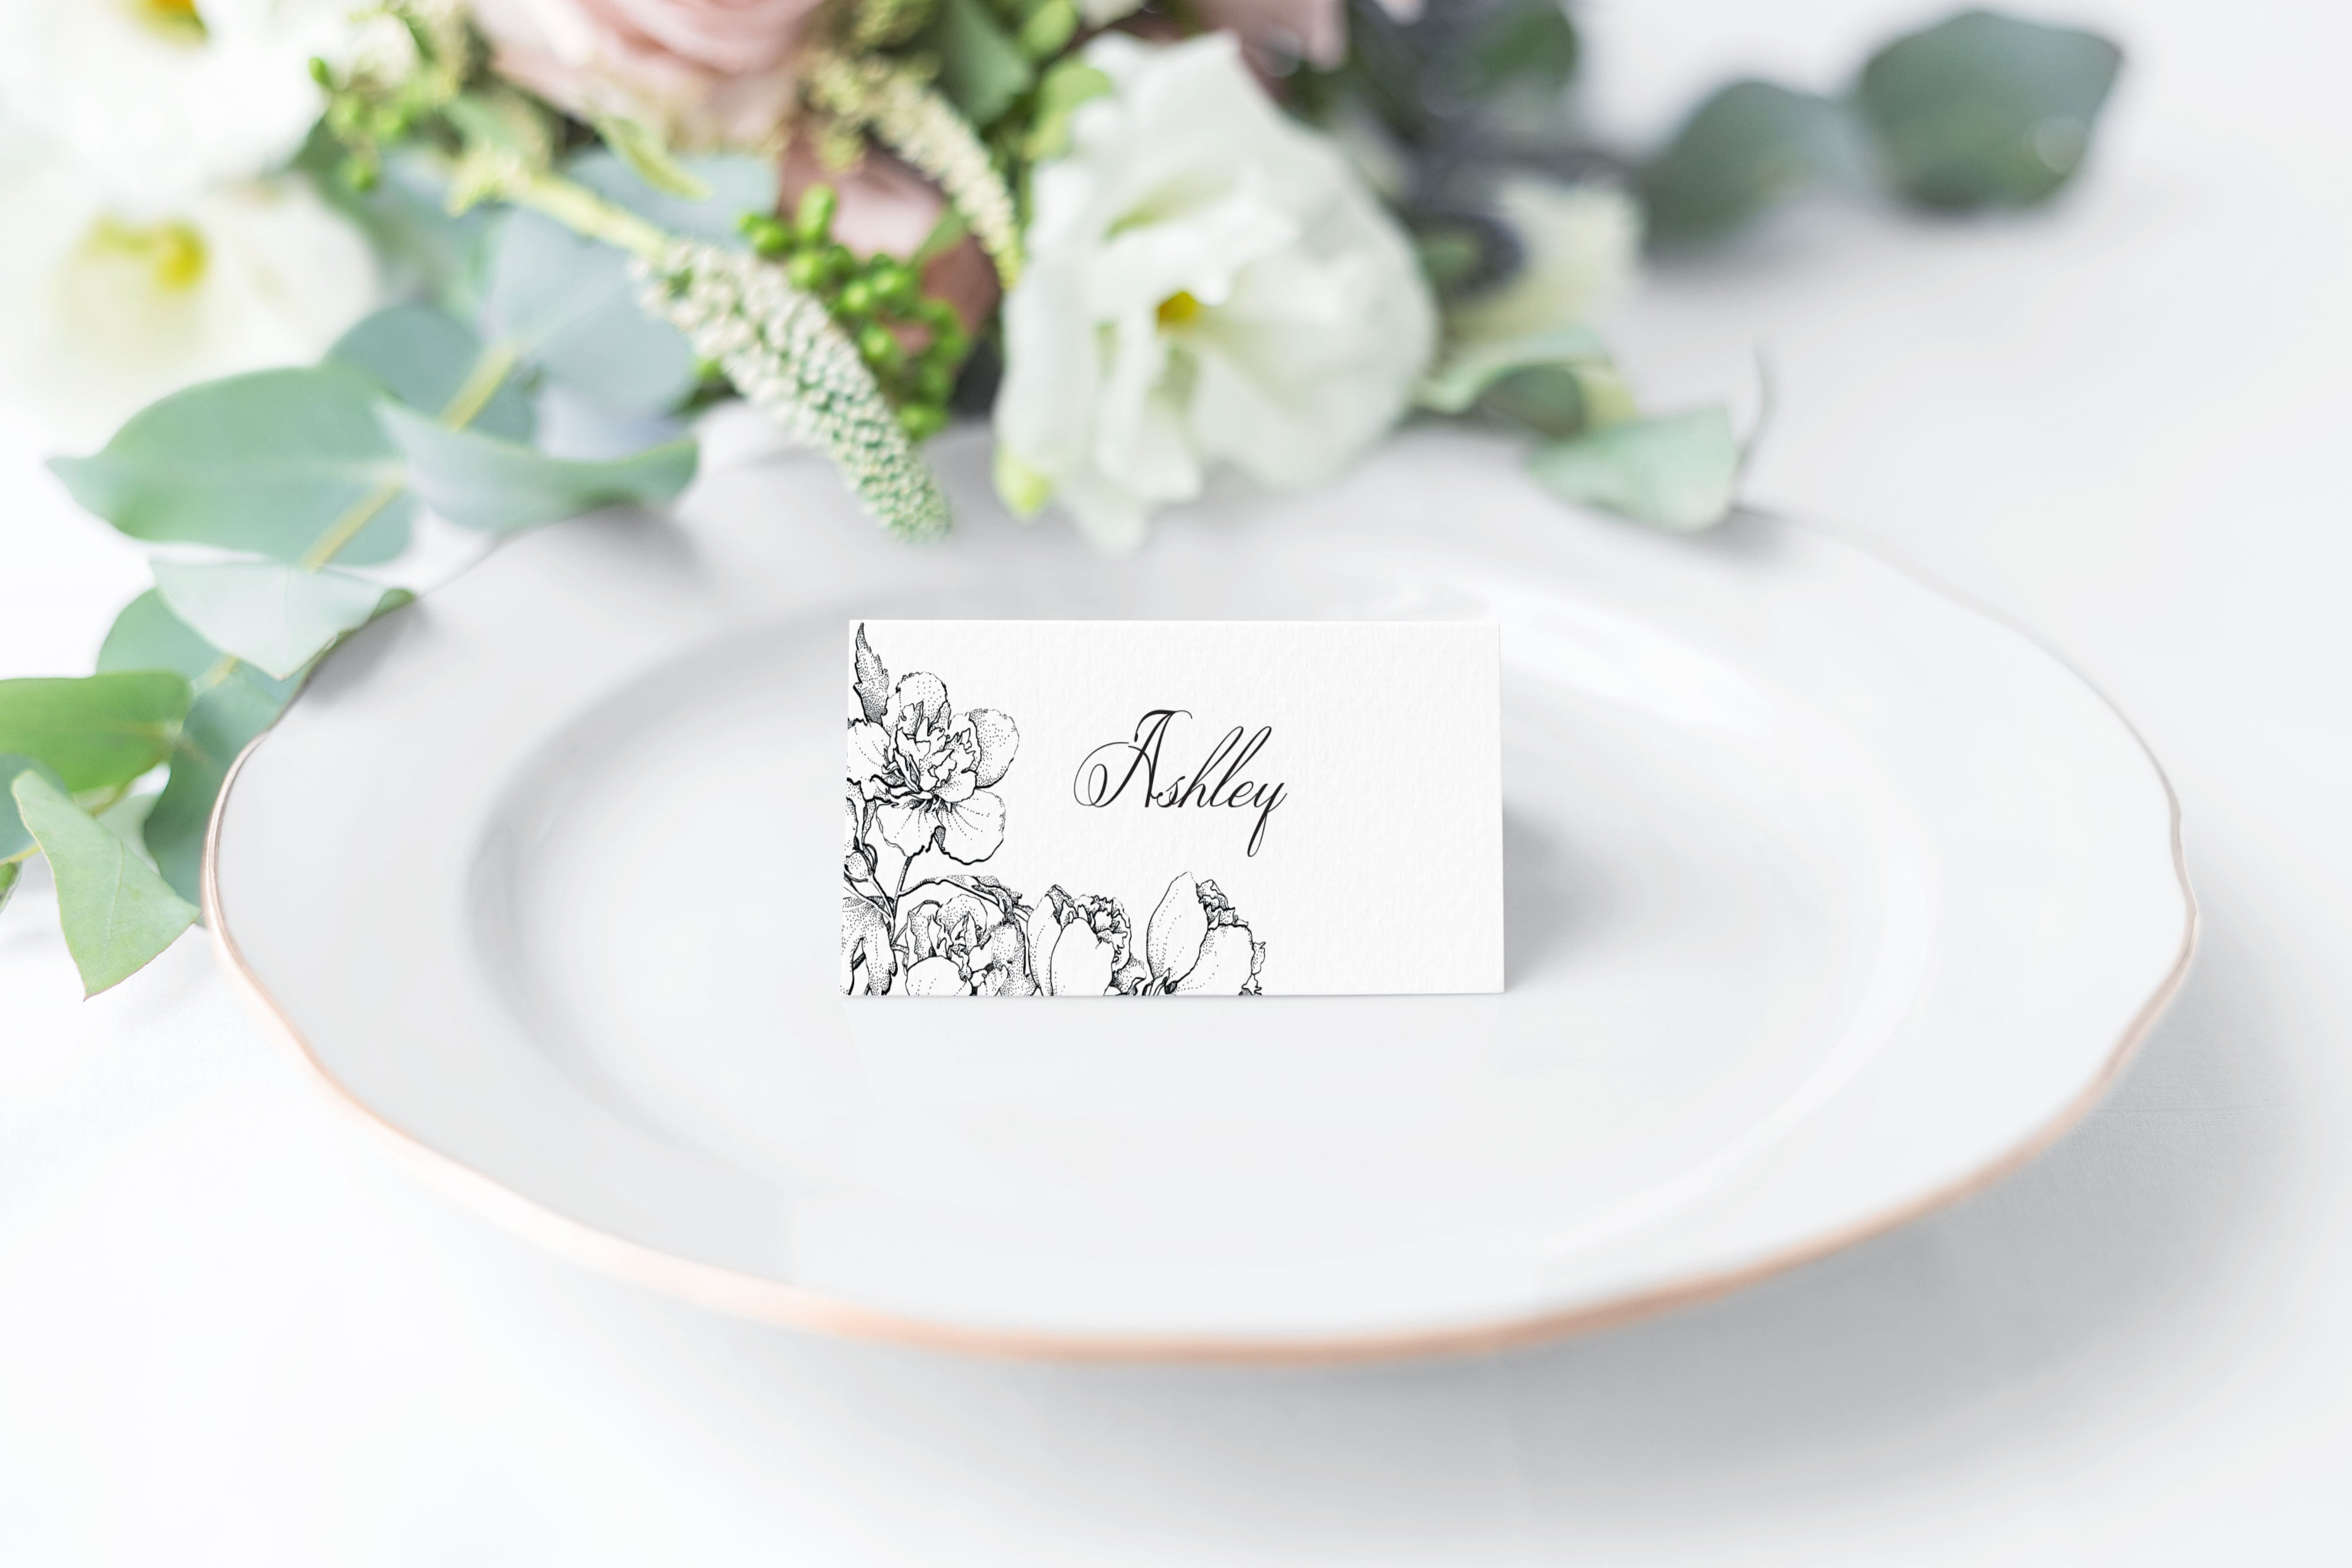 Ashley Escort Card Place Card Invited By Lamaworks